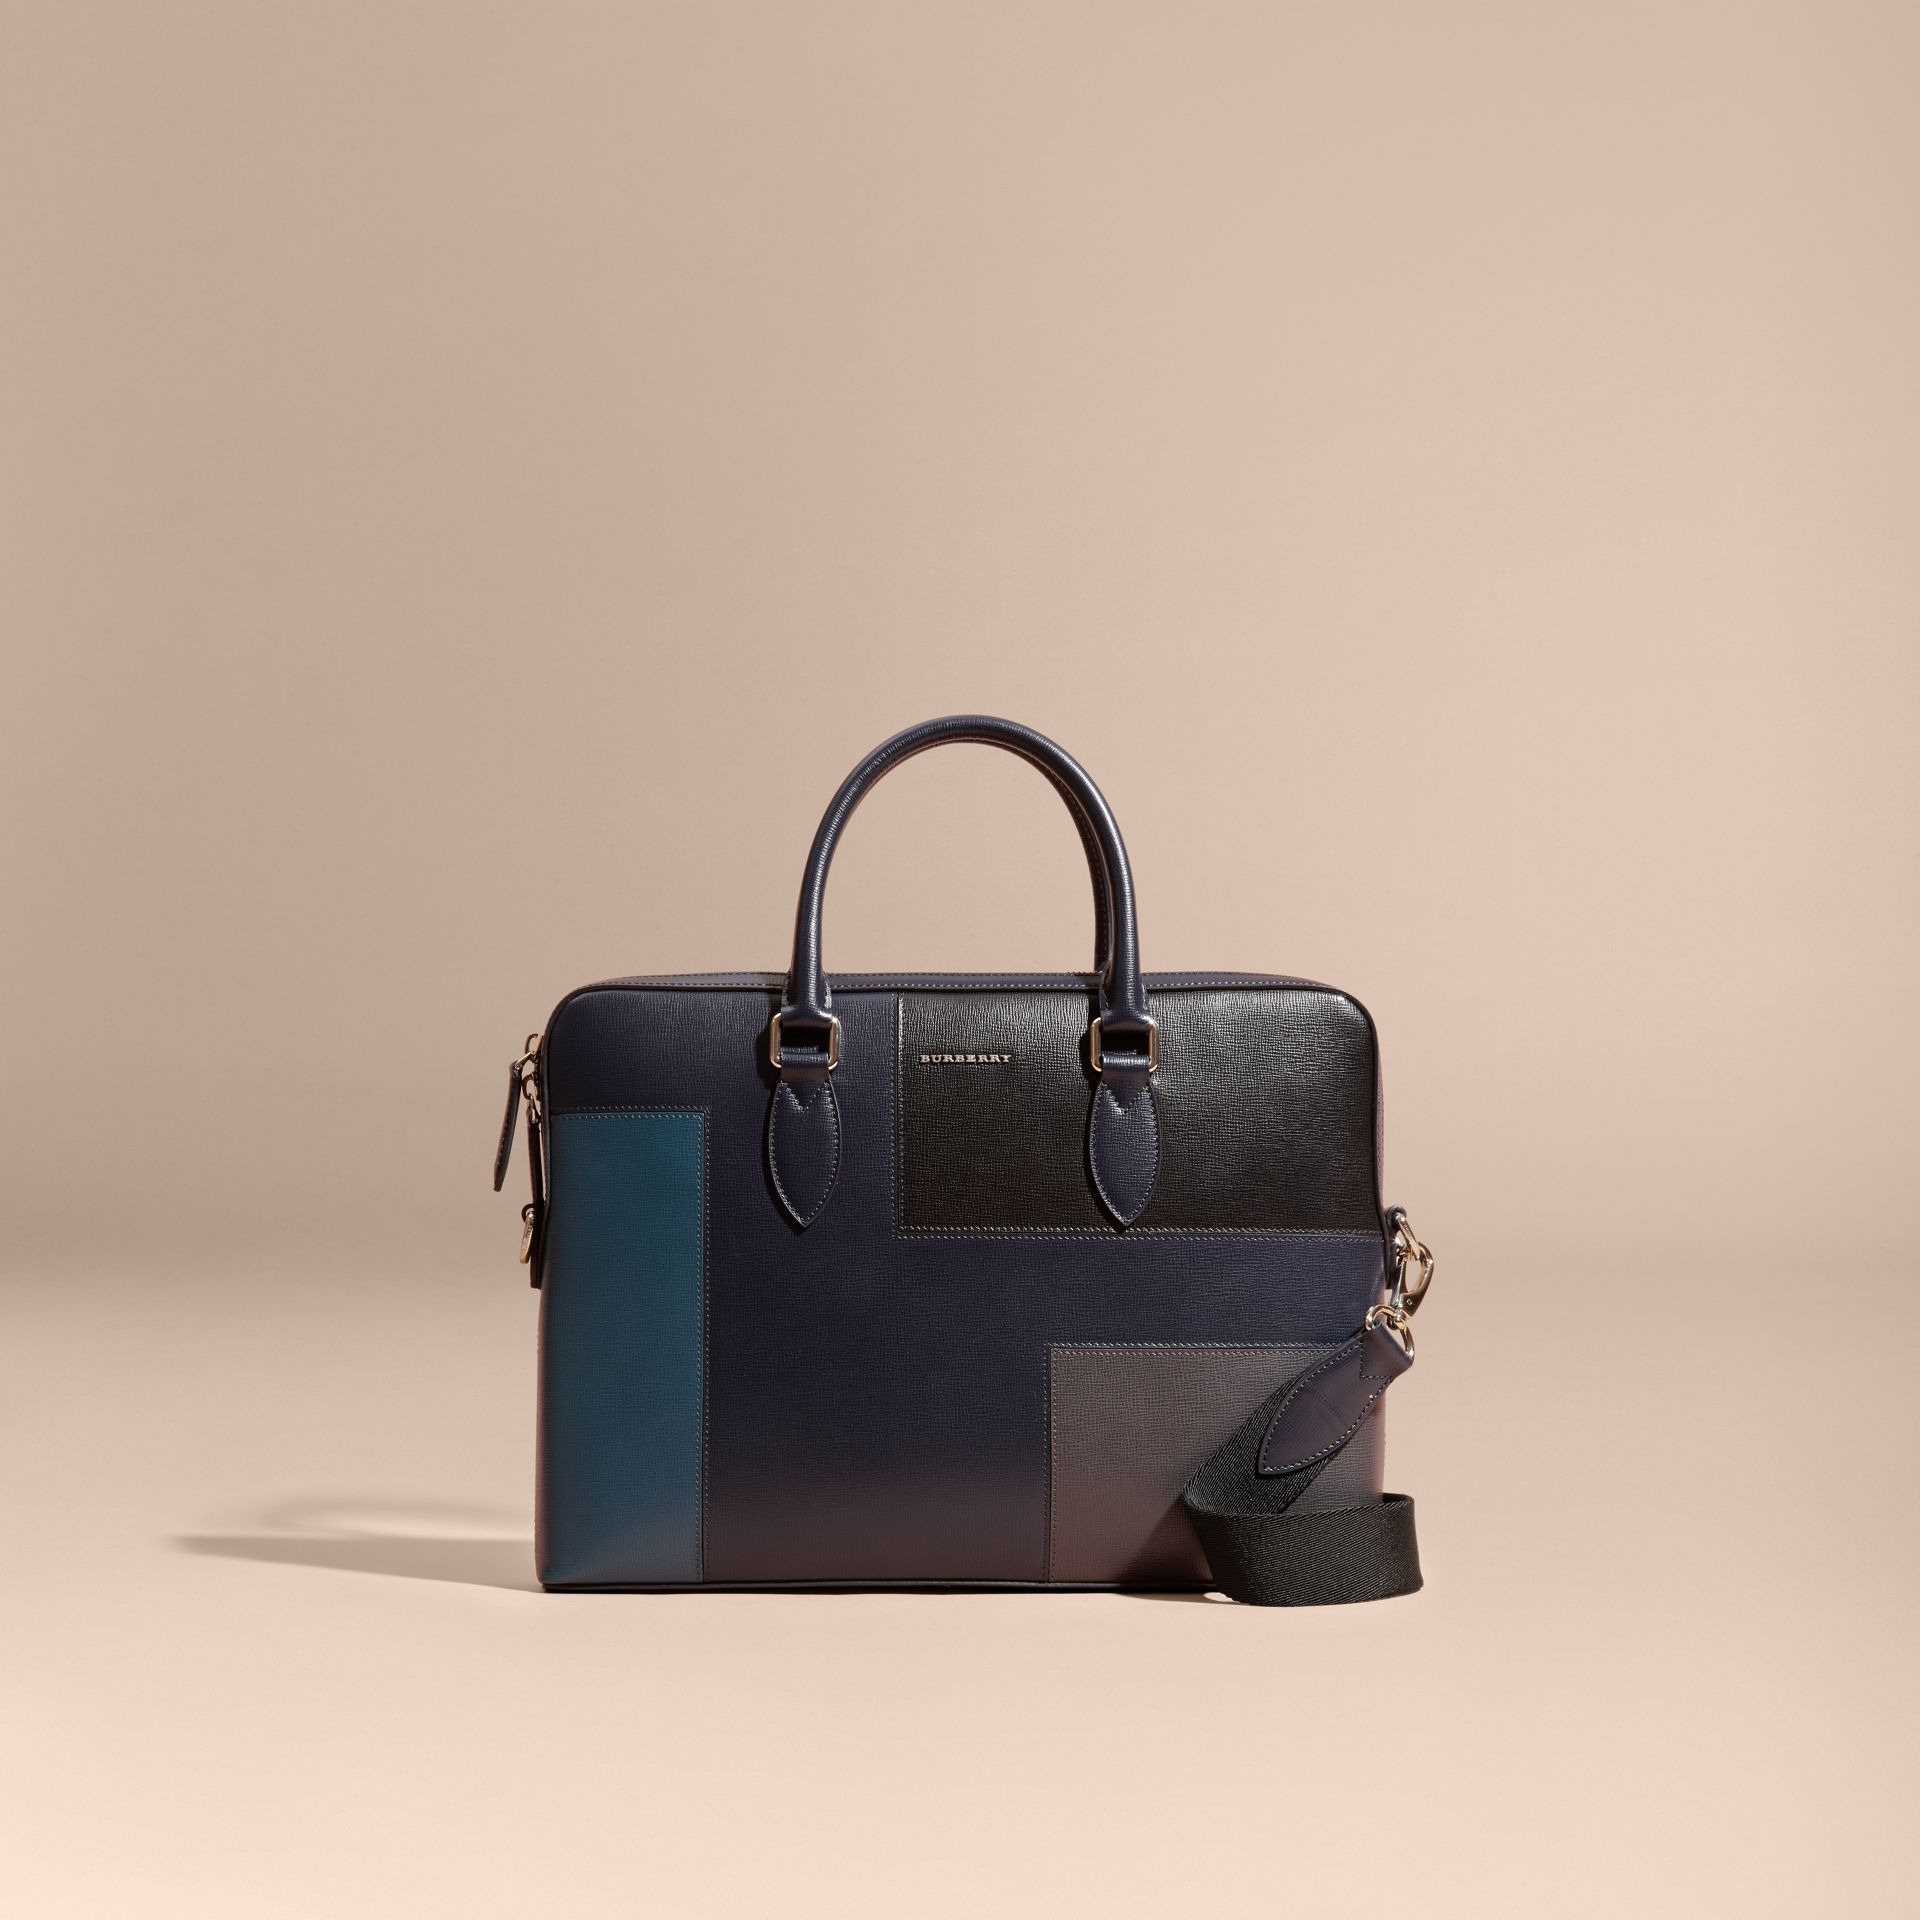 Dark navy The Slim Barrow Bag in Patchwork London Leather Dark Navy - gallery image 9